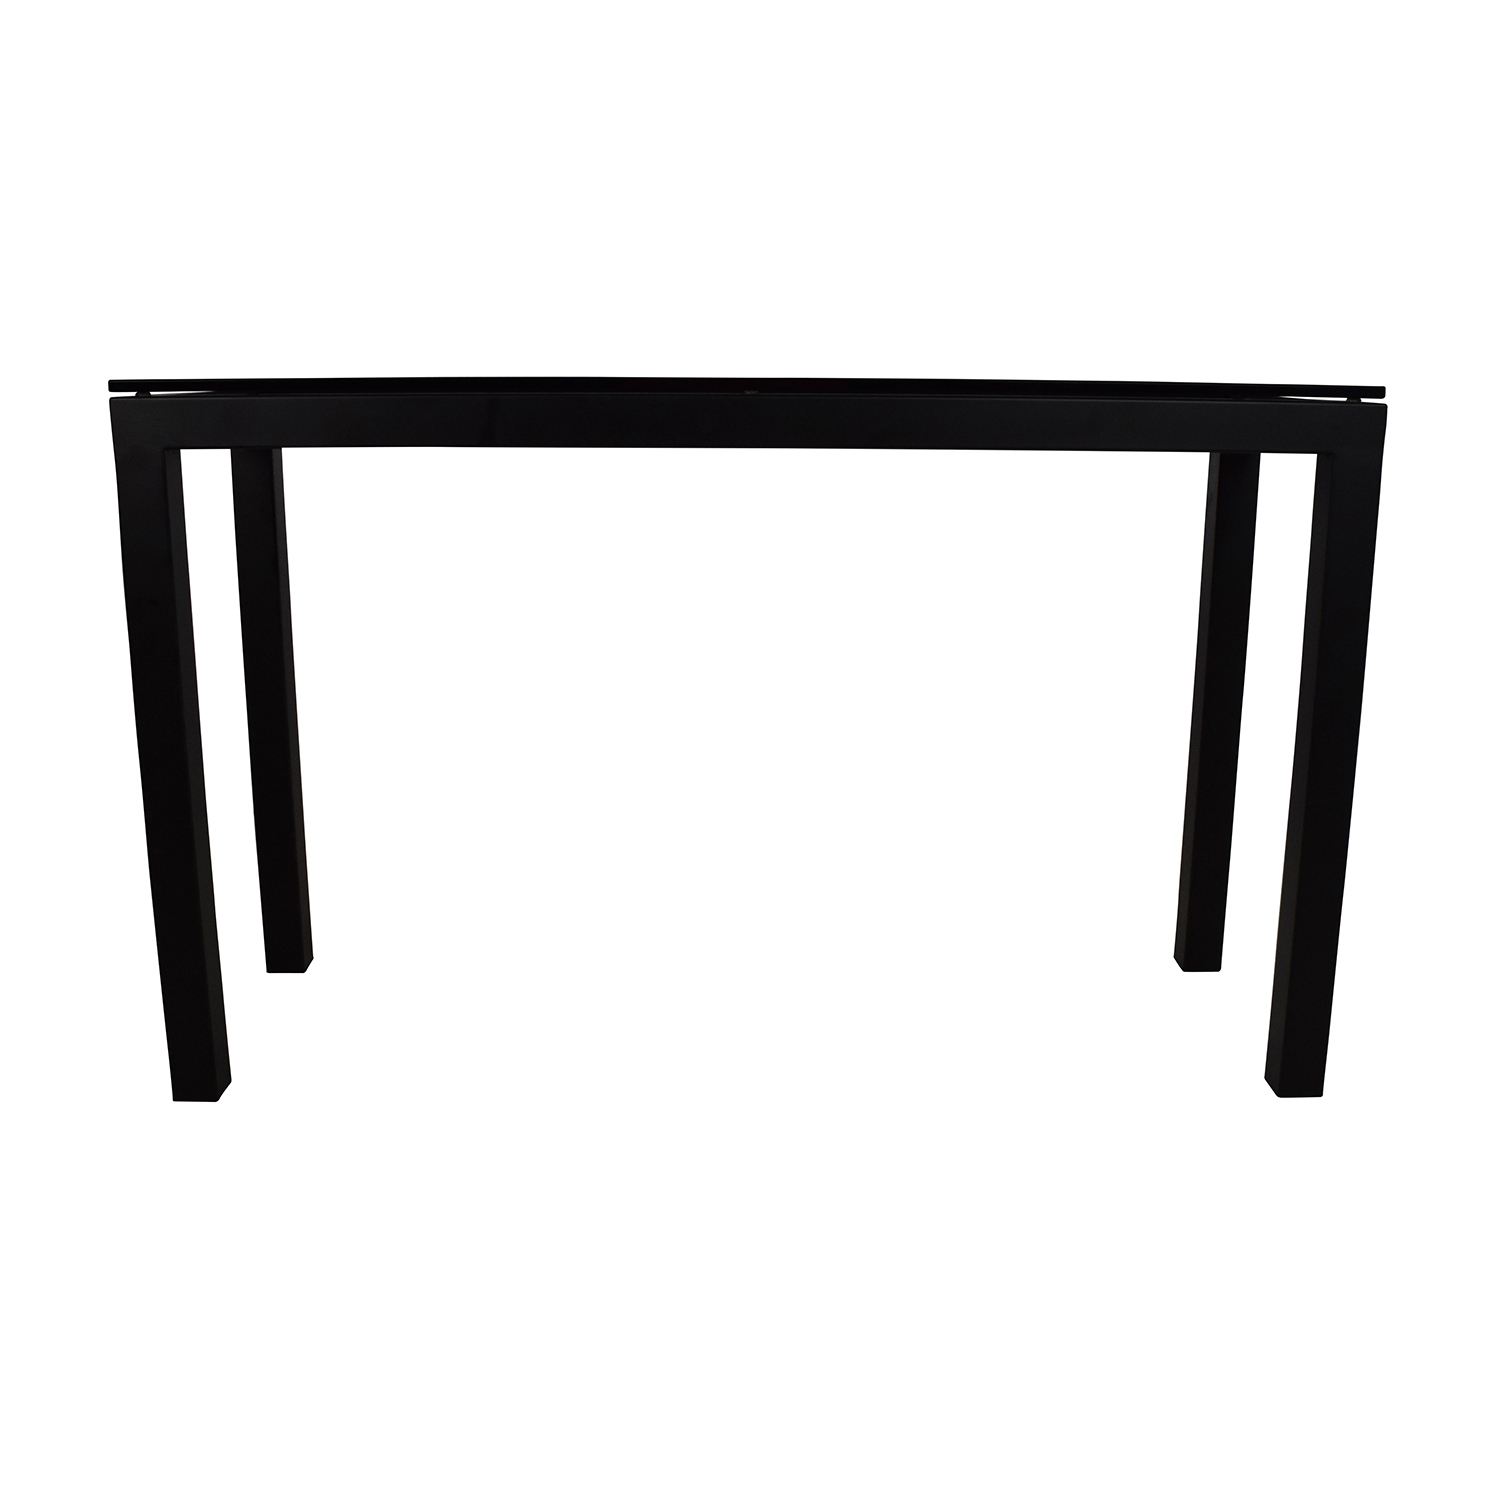 Crate And Barrel Parsons Side Table - Coffee Table Designs pertaining to Parsons Travertine Top & Stainless Steel Base 48X16 Console Tables (Image 12 of 30)